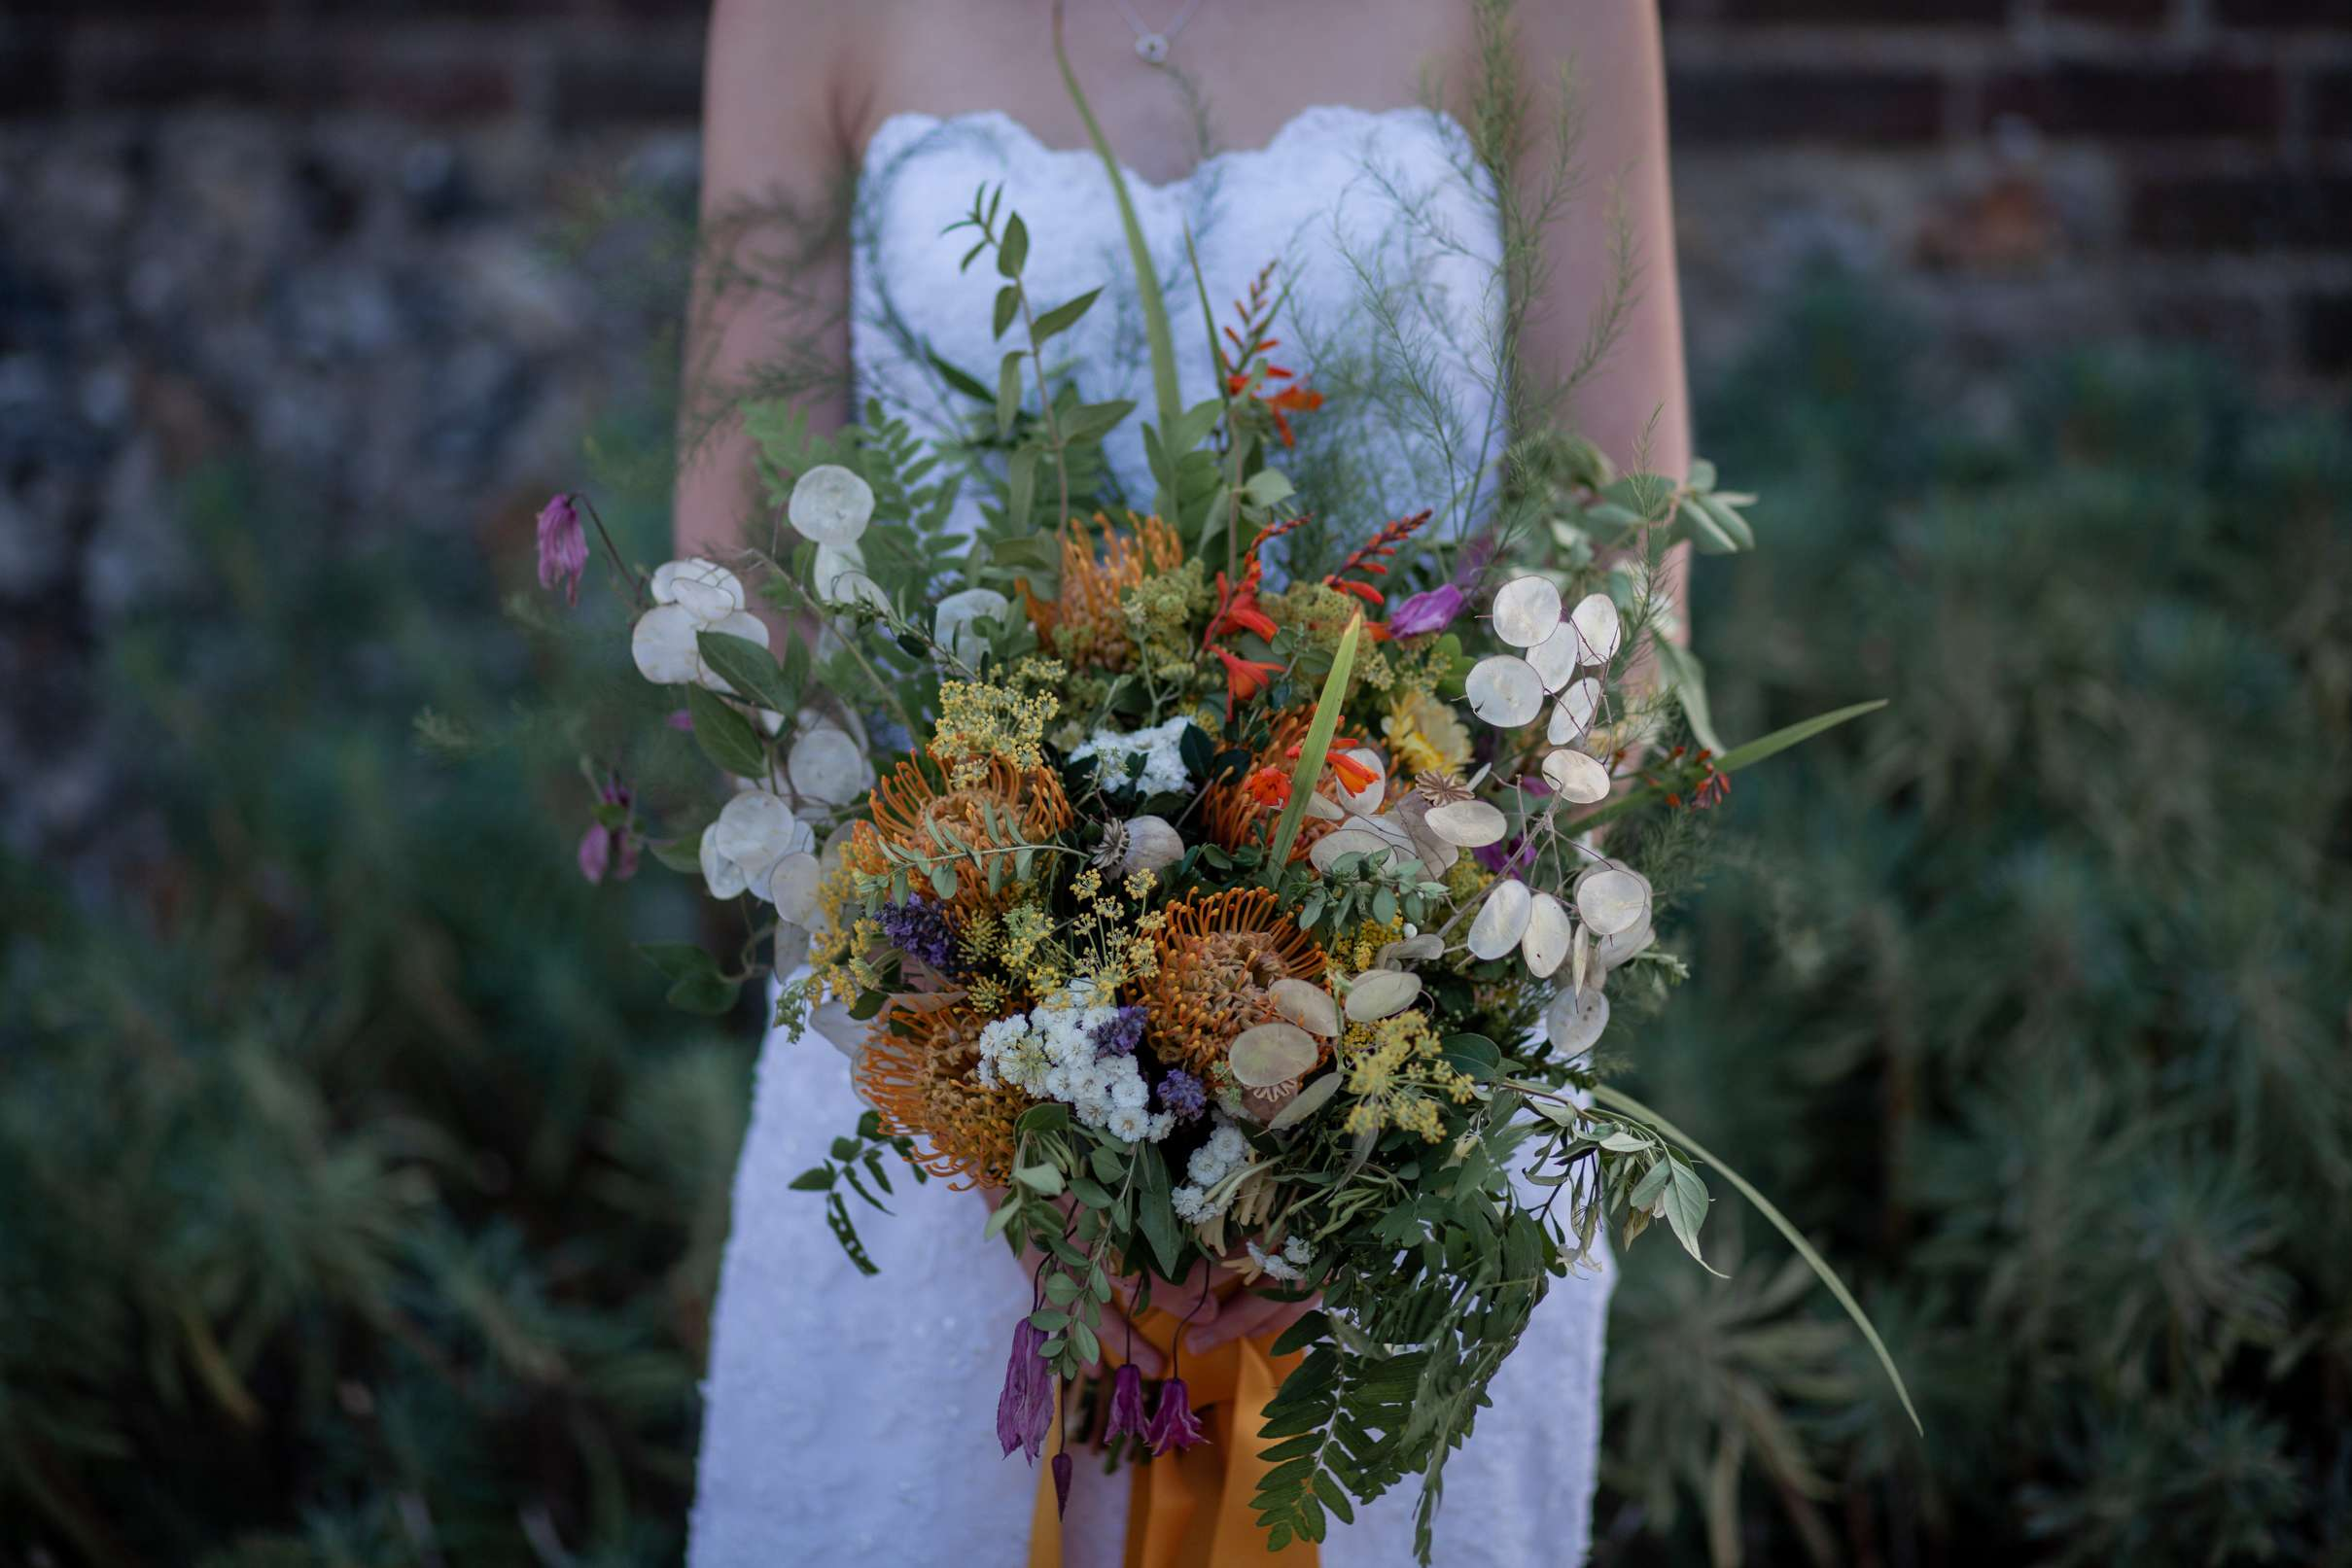 A wedding photo in Chichester a close up of a bride holding a rustic bouquet, taken at Chiddham barn